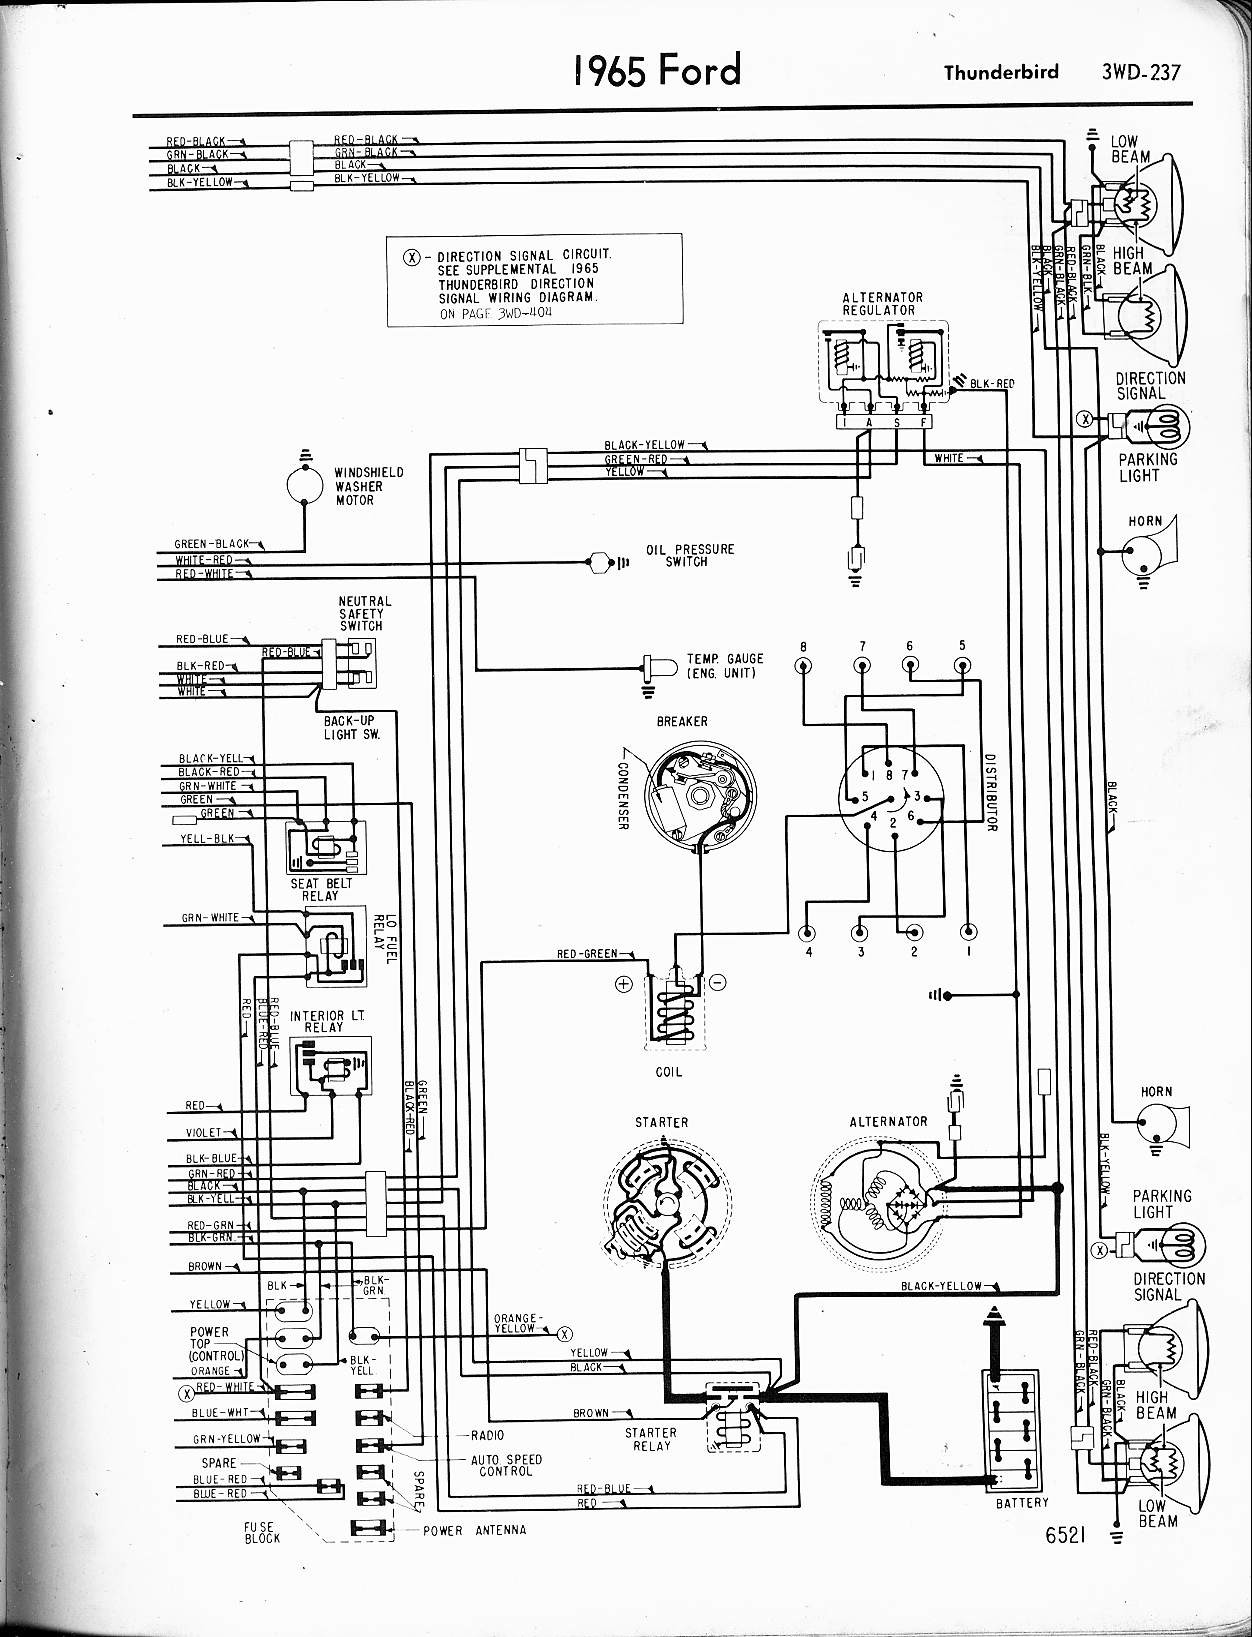 F250 Tail Light Wiring 57 65 ford Wiring Diagrams Of F250 Tail Light Wiring Best Wiring Diagram for Daytime Running Lights Diagrams